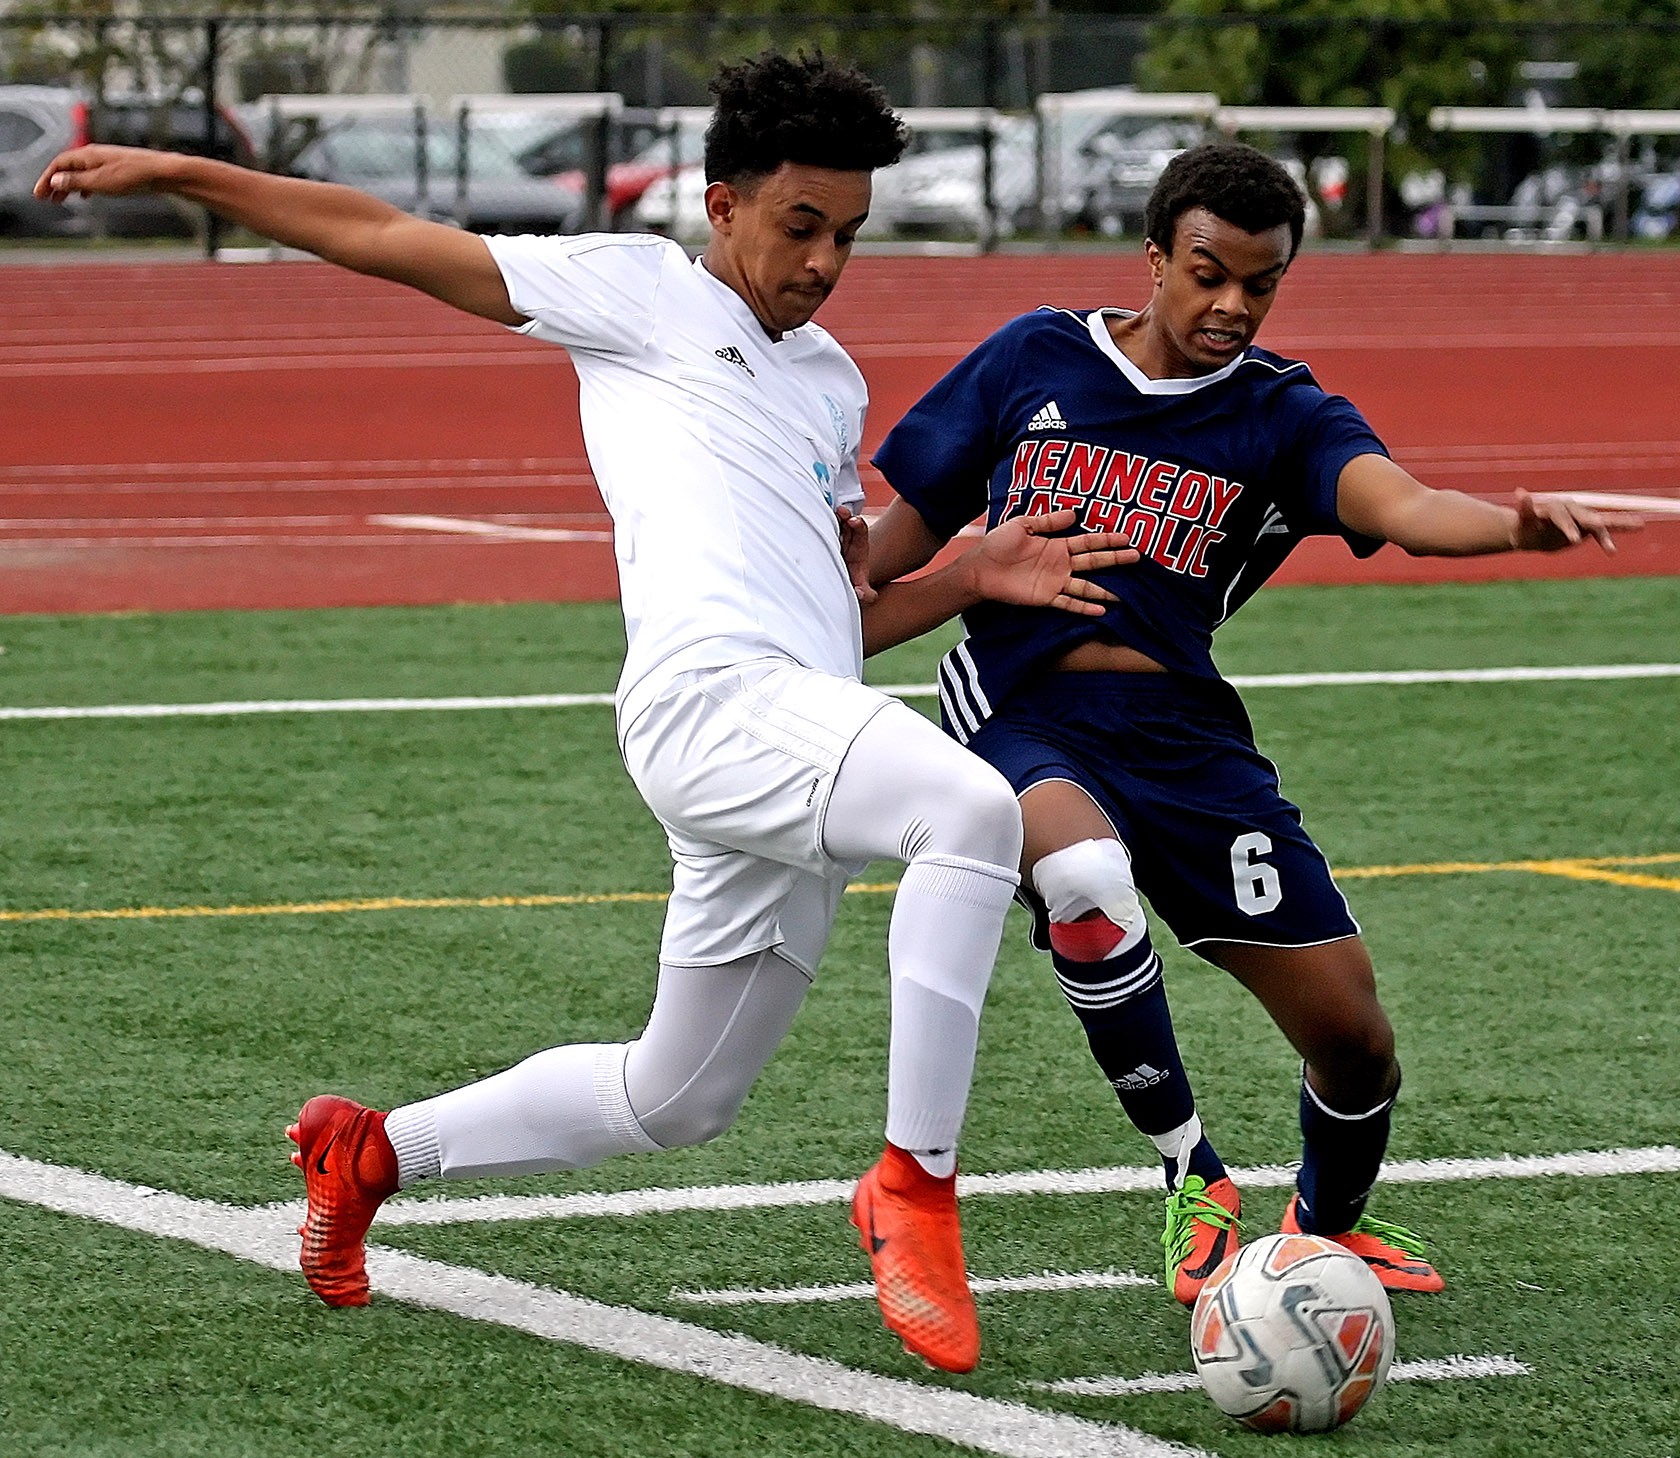 Michael Fikadu of Mt. Rainier and Kennedy Catholic's Phanuel Araya go for the ball.